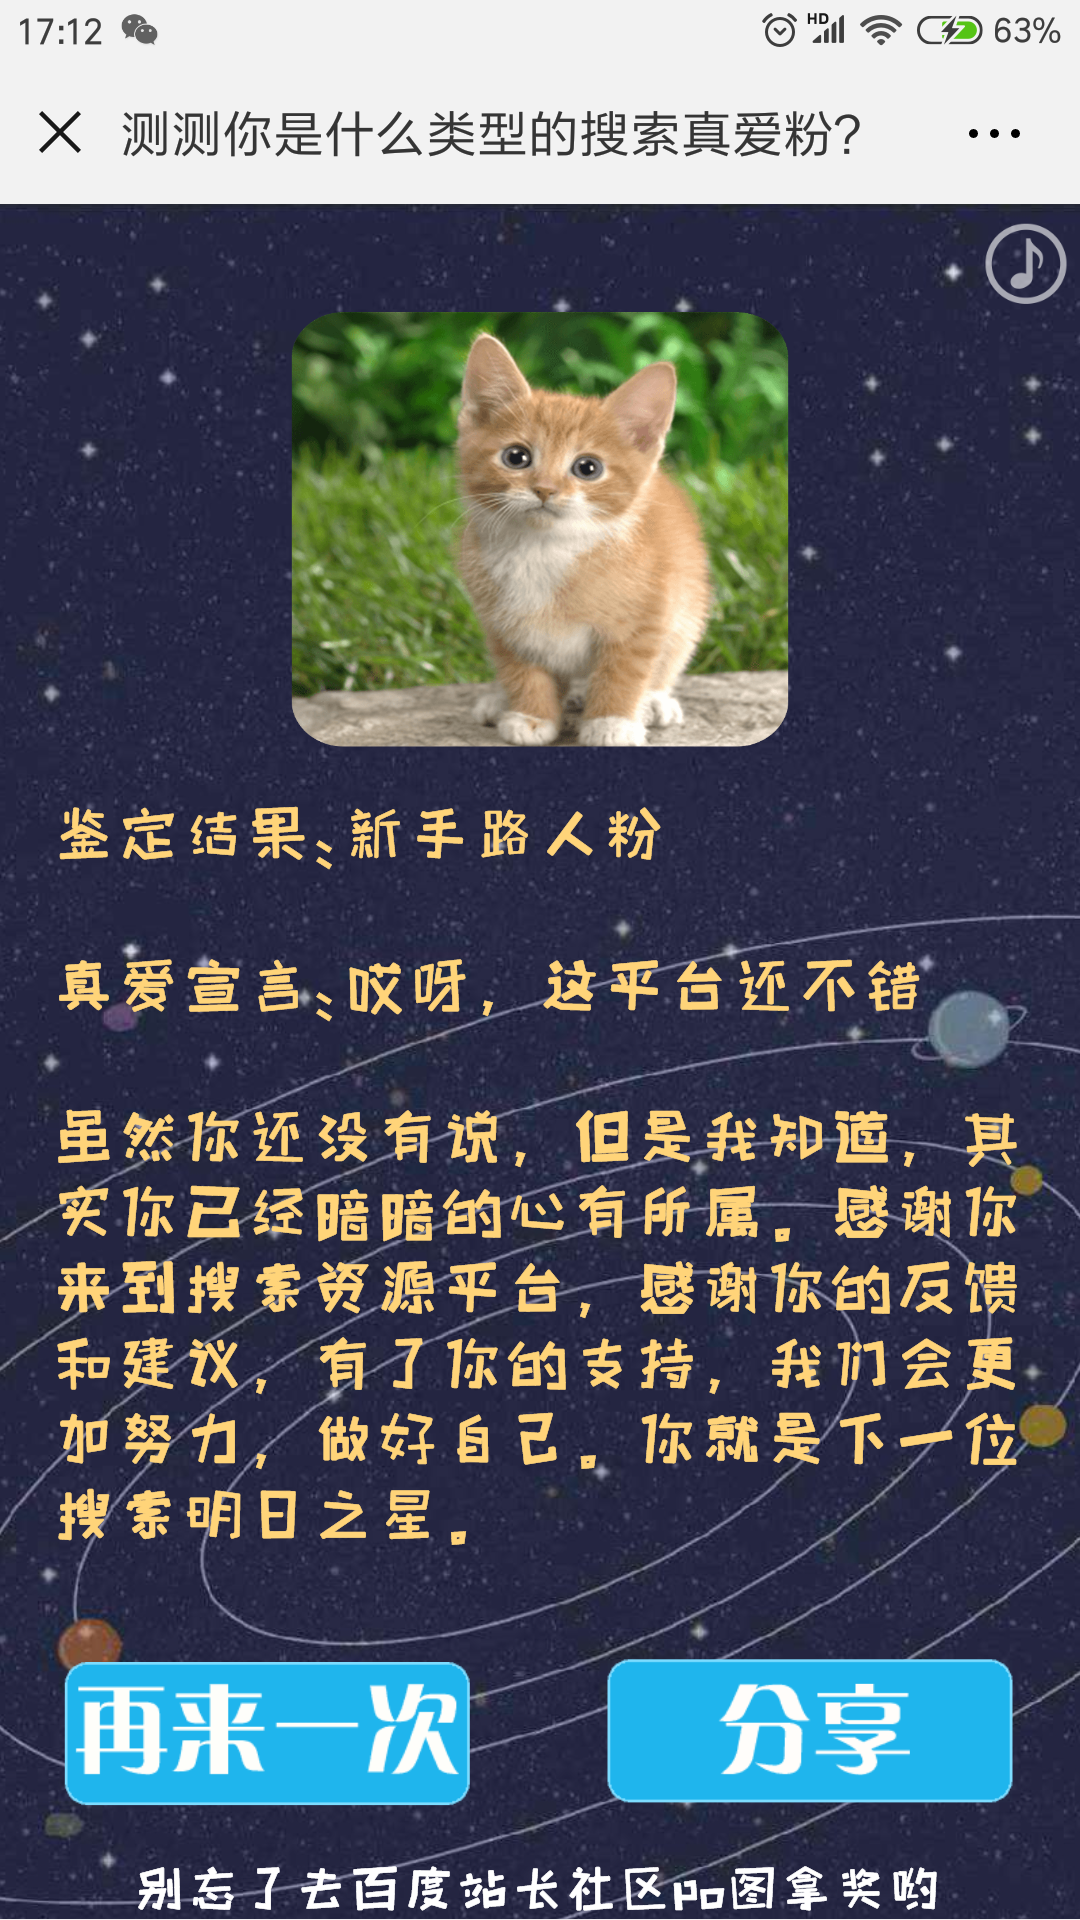 Screenshot_2018-11-27-17-12-54-316_com.tencent.mm.png